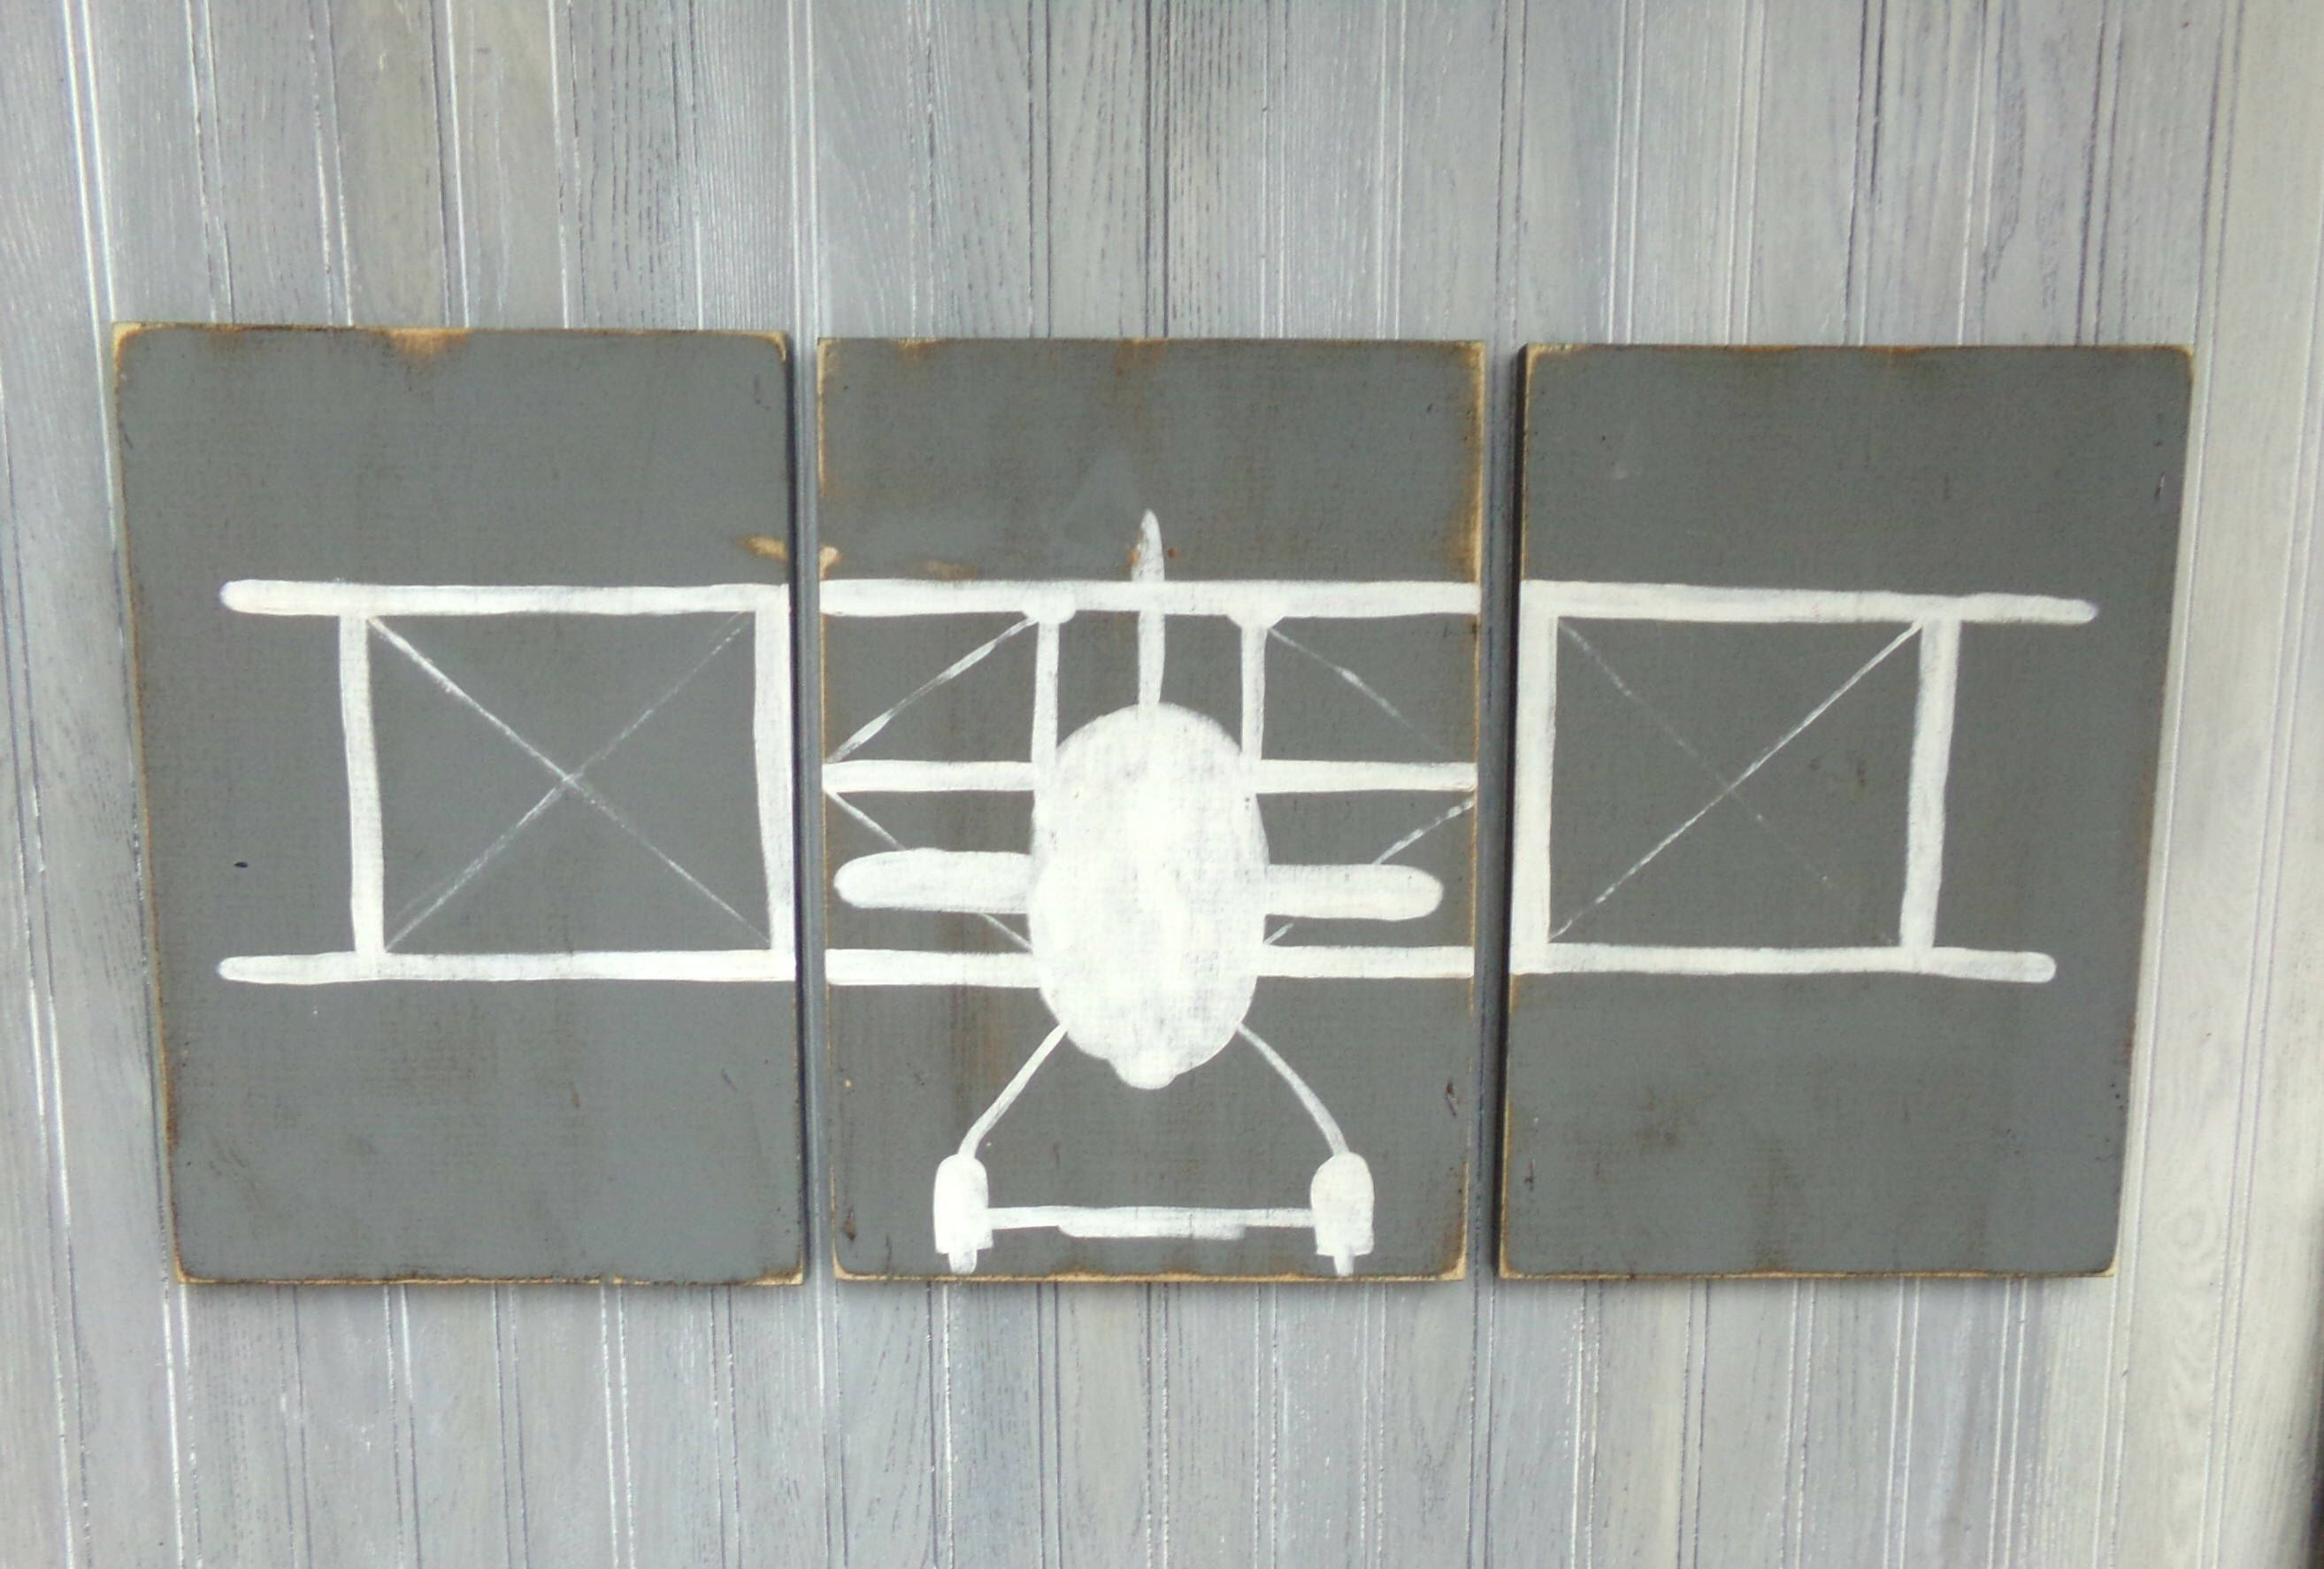 decor the aviation hanger air curtain wright pin from pinterest vintage airplane bros force shower